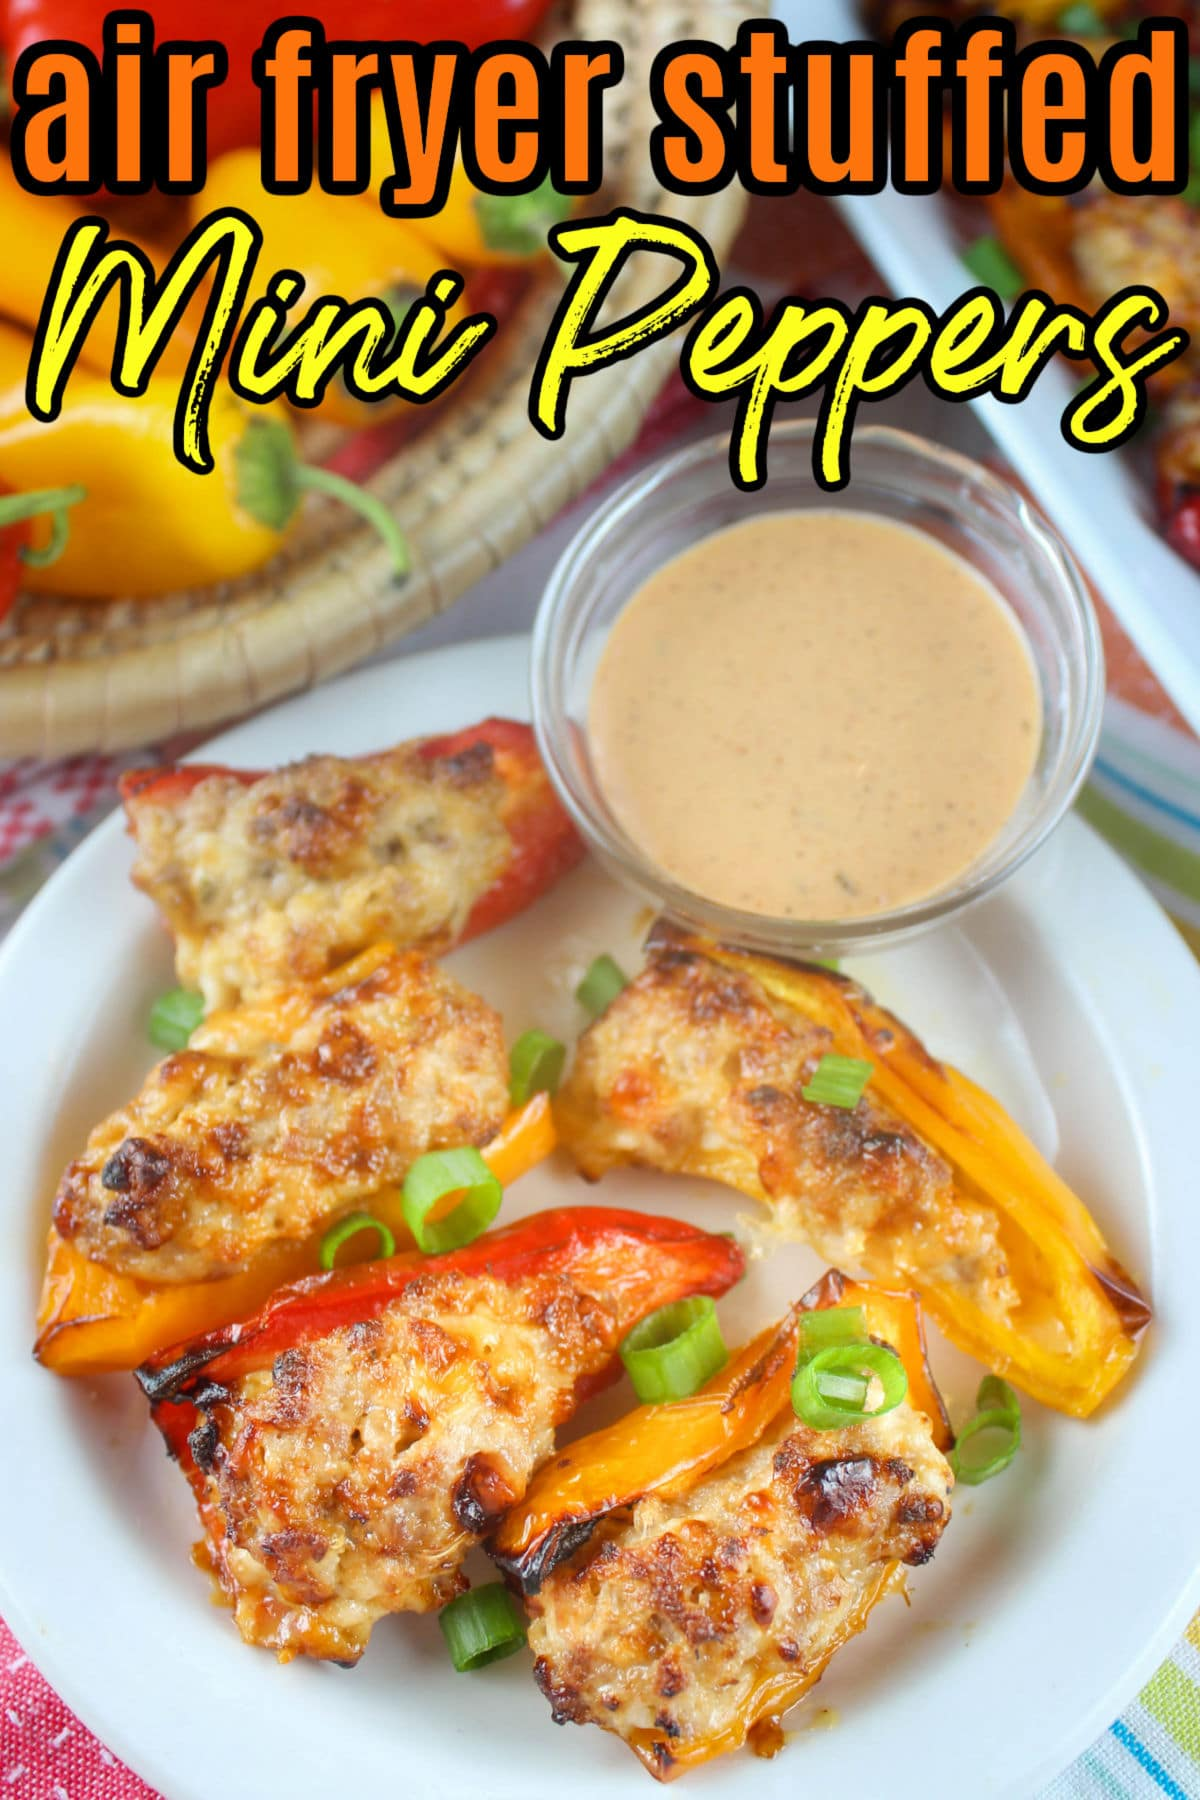 Air Fryer Stuffed Mini Peppers are one of my favorite tasty treats to make - it can be an appetizer or a meal! Those bags of mini peppers are the perfect size for popping in your mouth! Filled with sausage, cream cheese and more - you'll love them!  via @foodhussy